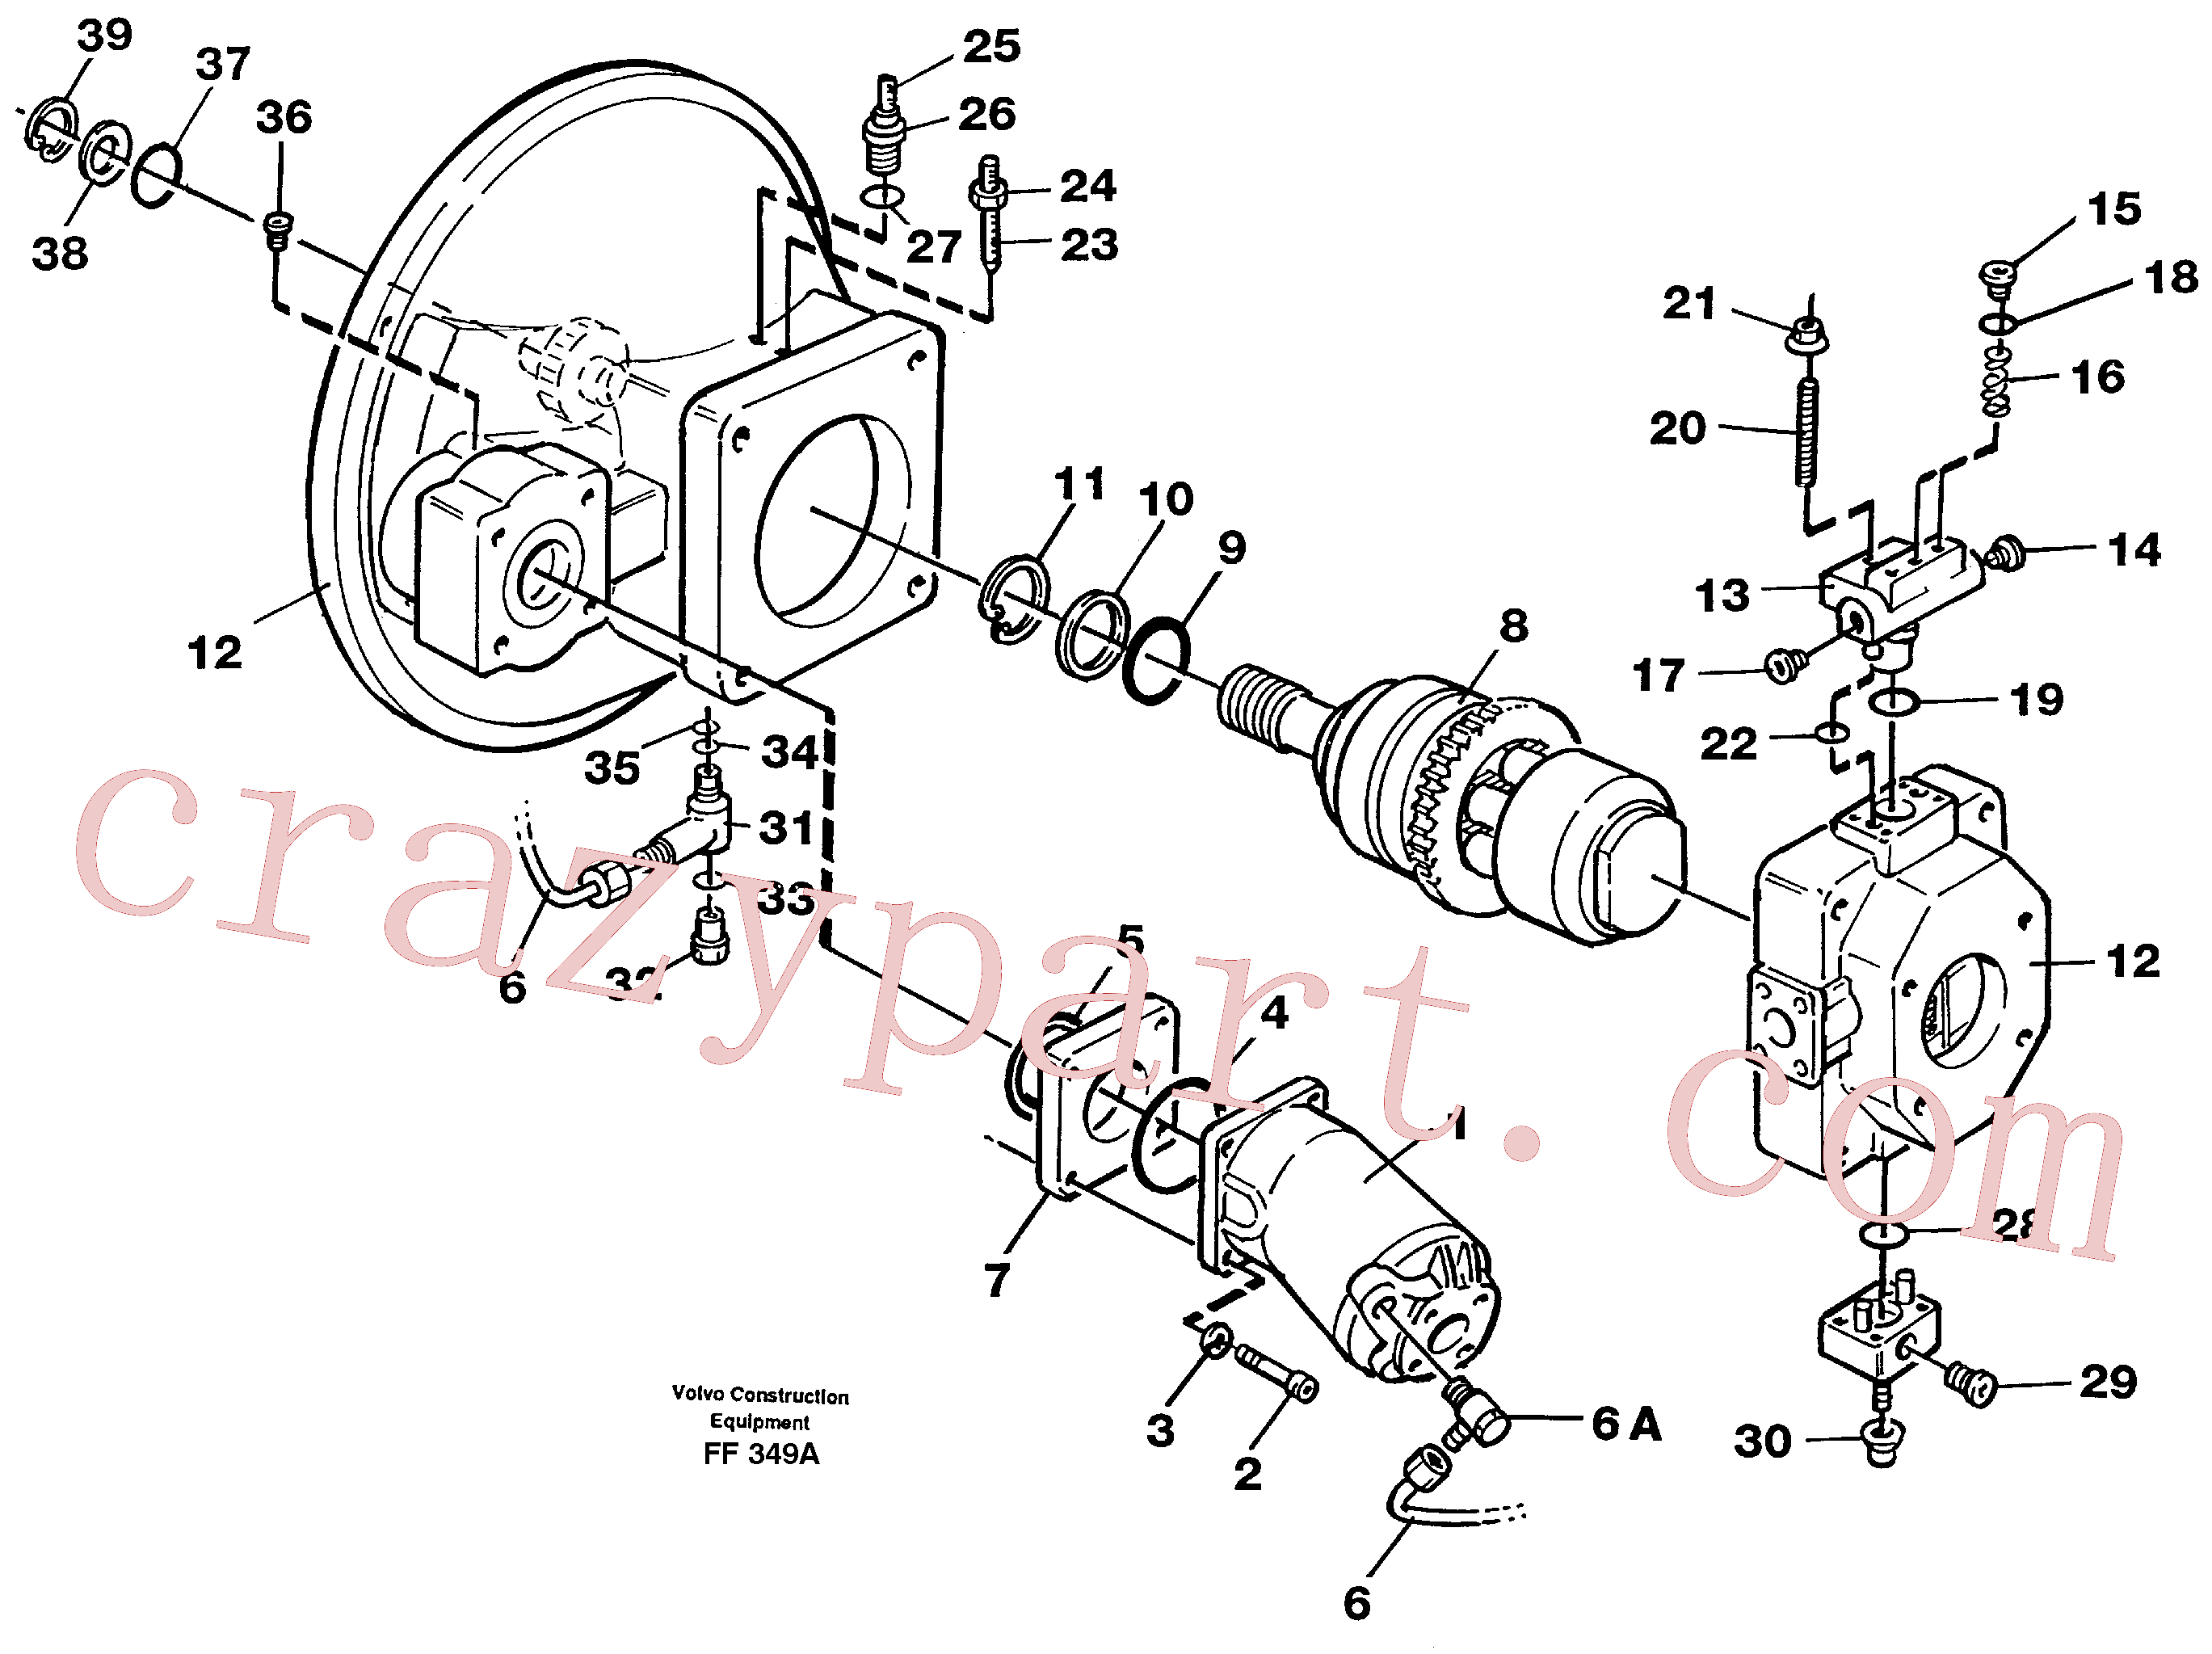 VOE11701785 for Volvo Pump gear box(FF349A assembly)